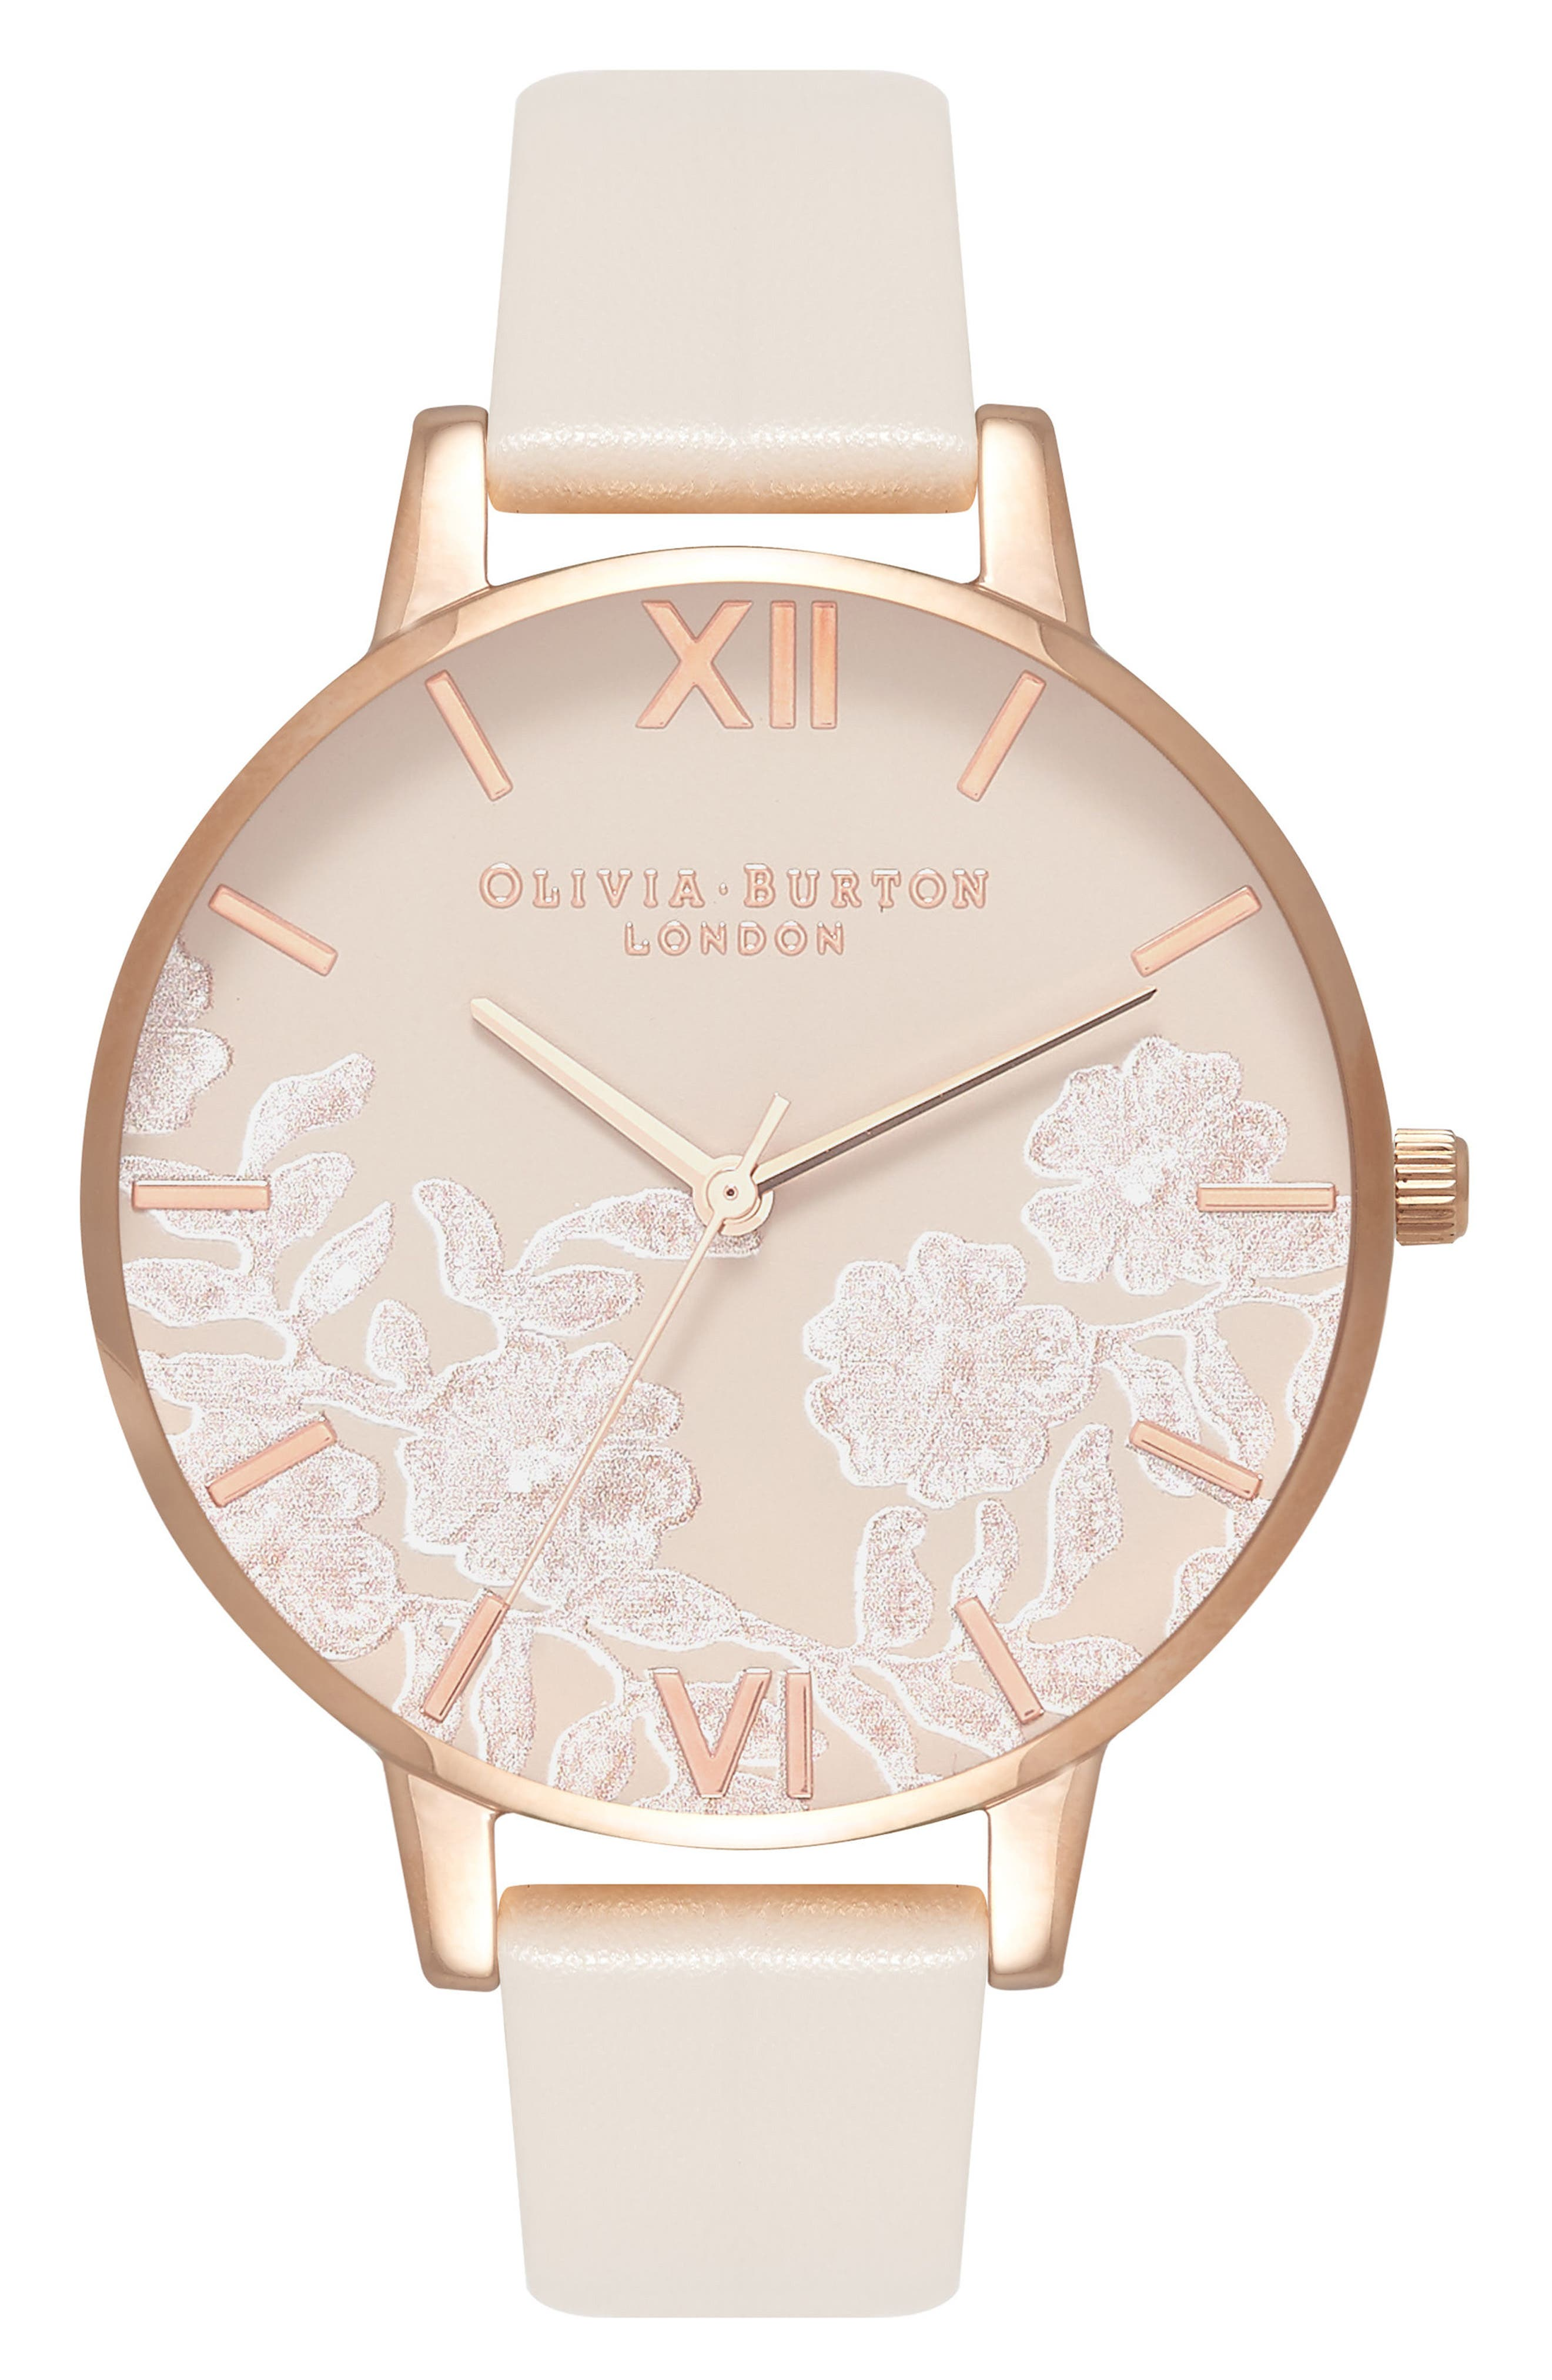 Lace Detail Faux Leather Strap Watch, 38mm,                             Main thumbnail 1, color,                             NUDE/ GREY FLORAL/ ROSE GOLD